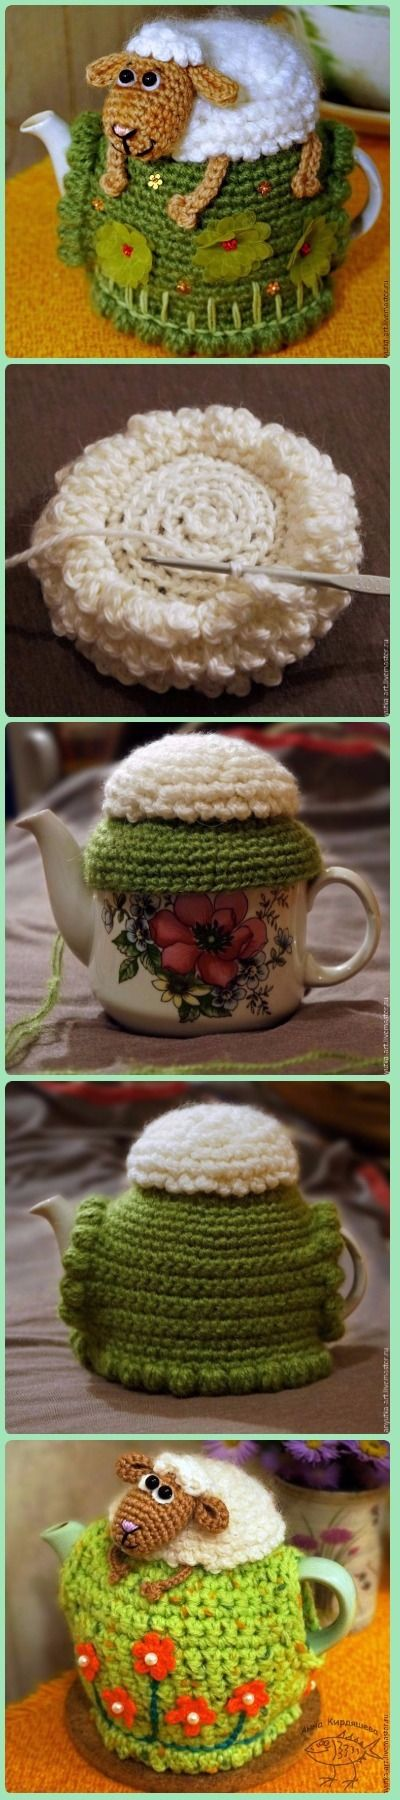 25 Crochet Knit Tea Cozy Free Patterns Picture Instructions ...